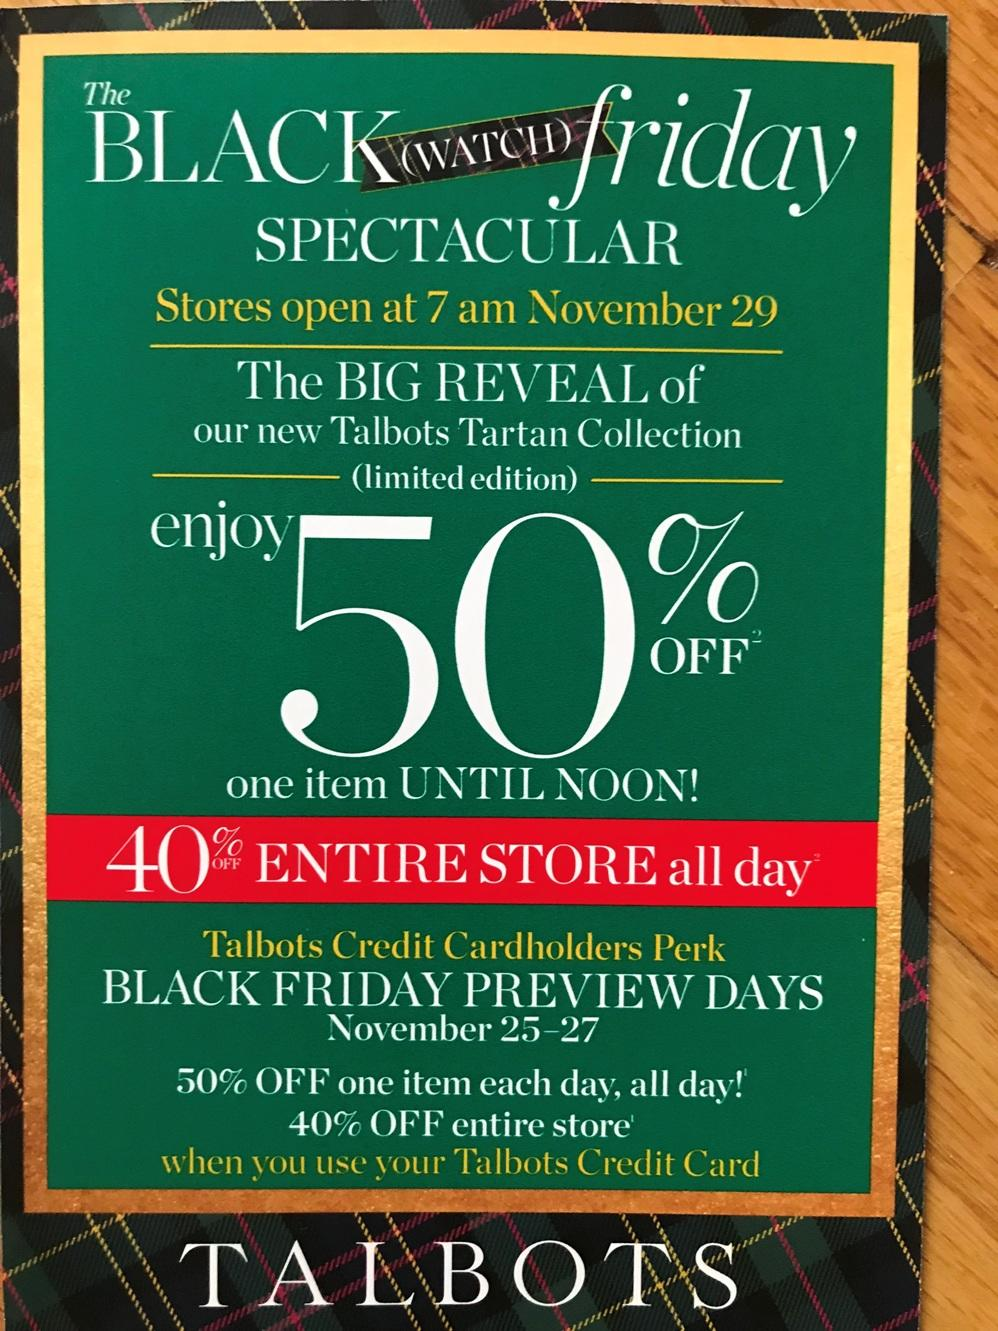 Talbots Black Friday 2020 Ad